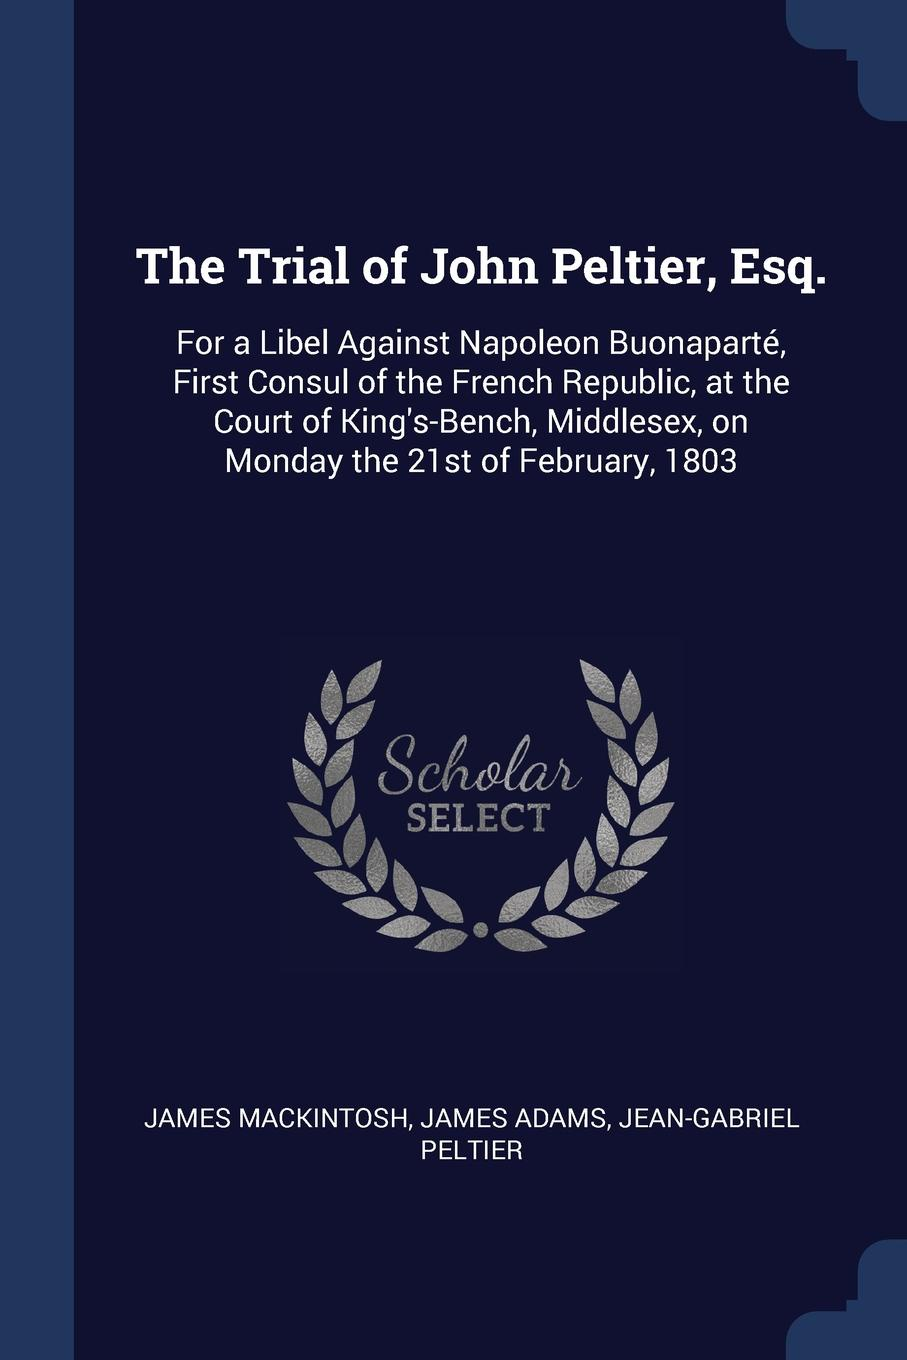 The Trial of John Peltier, Esq. For a Libel Against Napoleon Buonaparte, First Consul of the French Republic, at the Court of King.s-Bench, Middlesex, on Monday the 21st of February, 1803